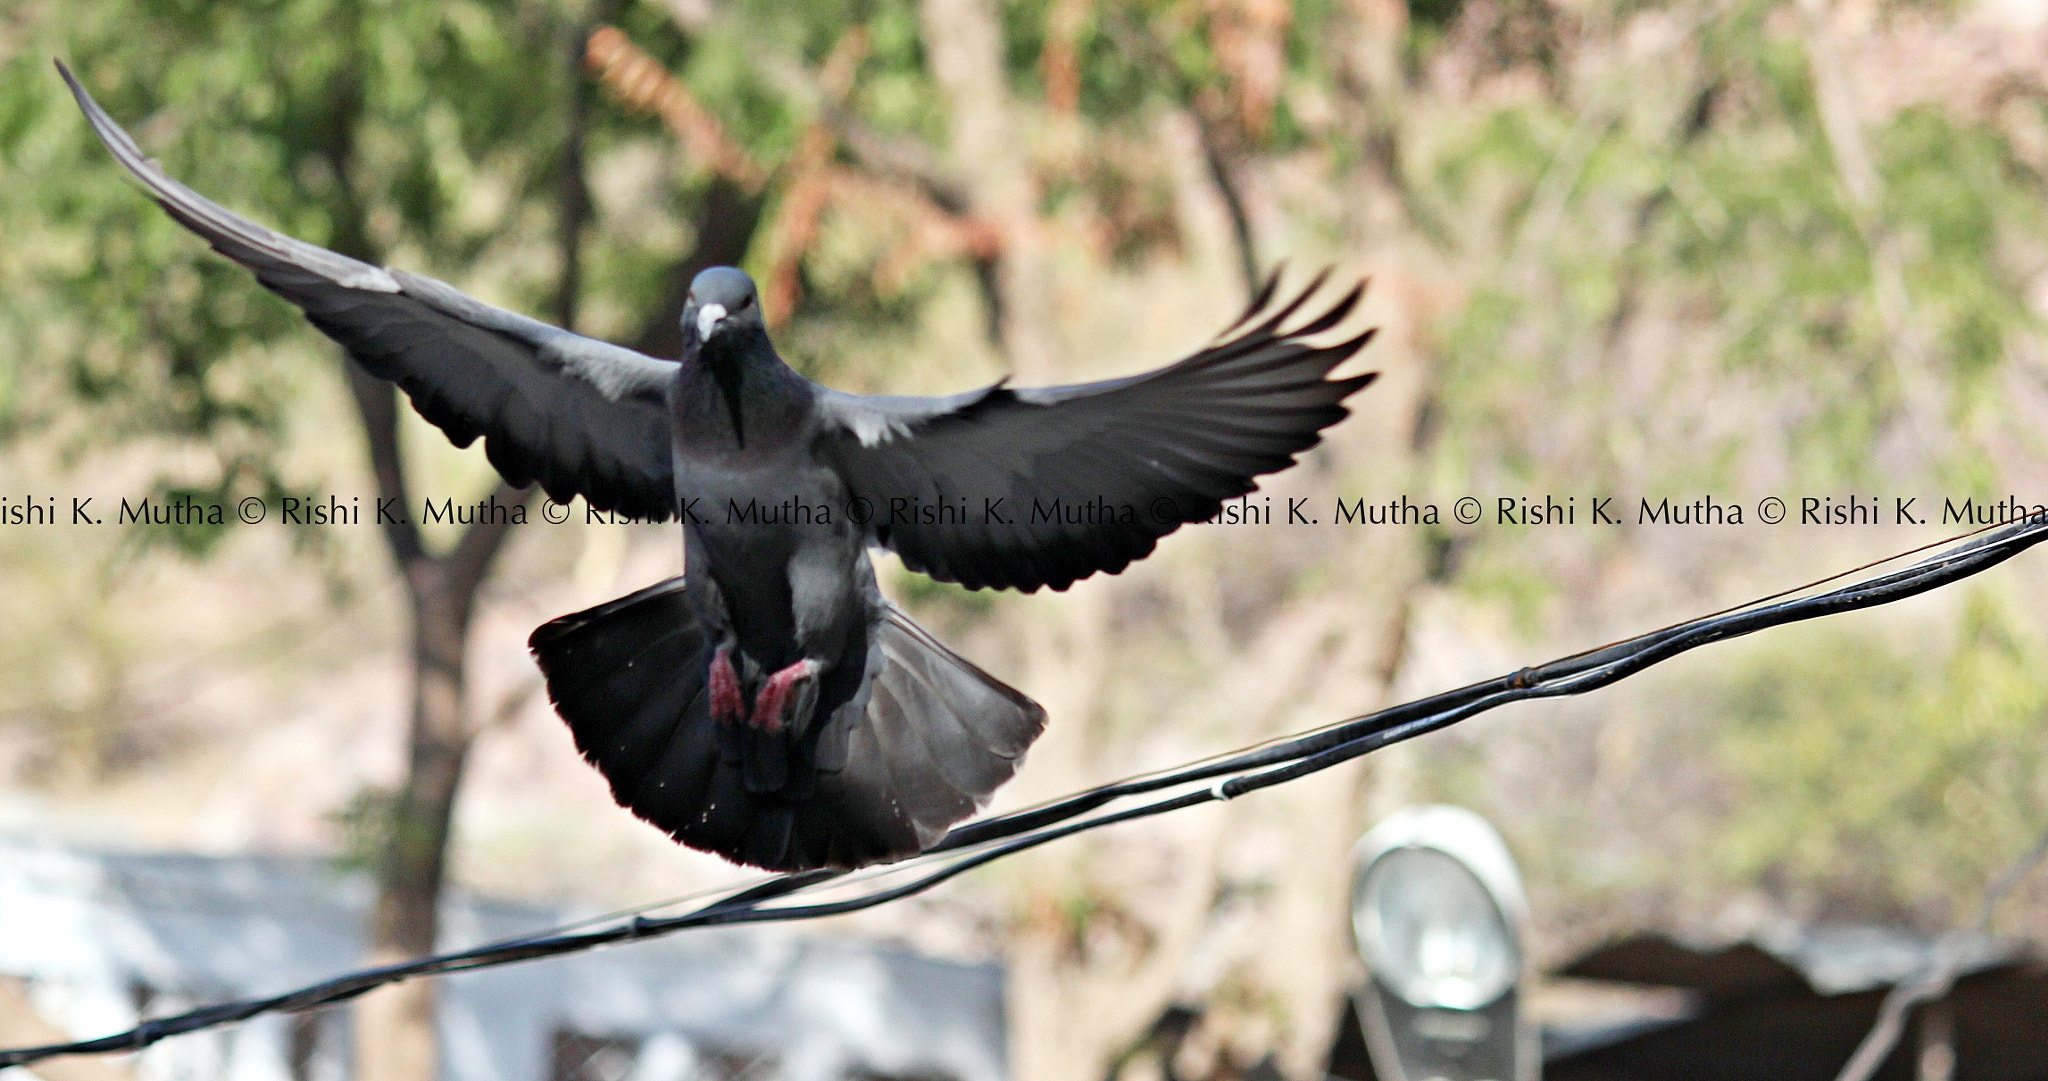 Photograph lets fly by Rishi K. Mutha on 500px